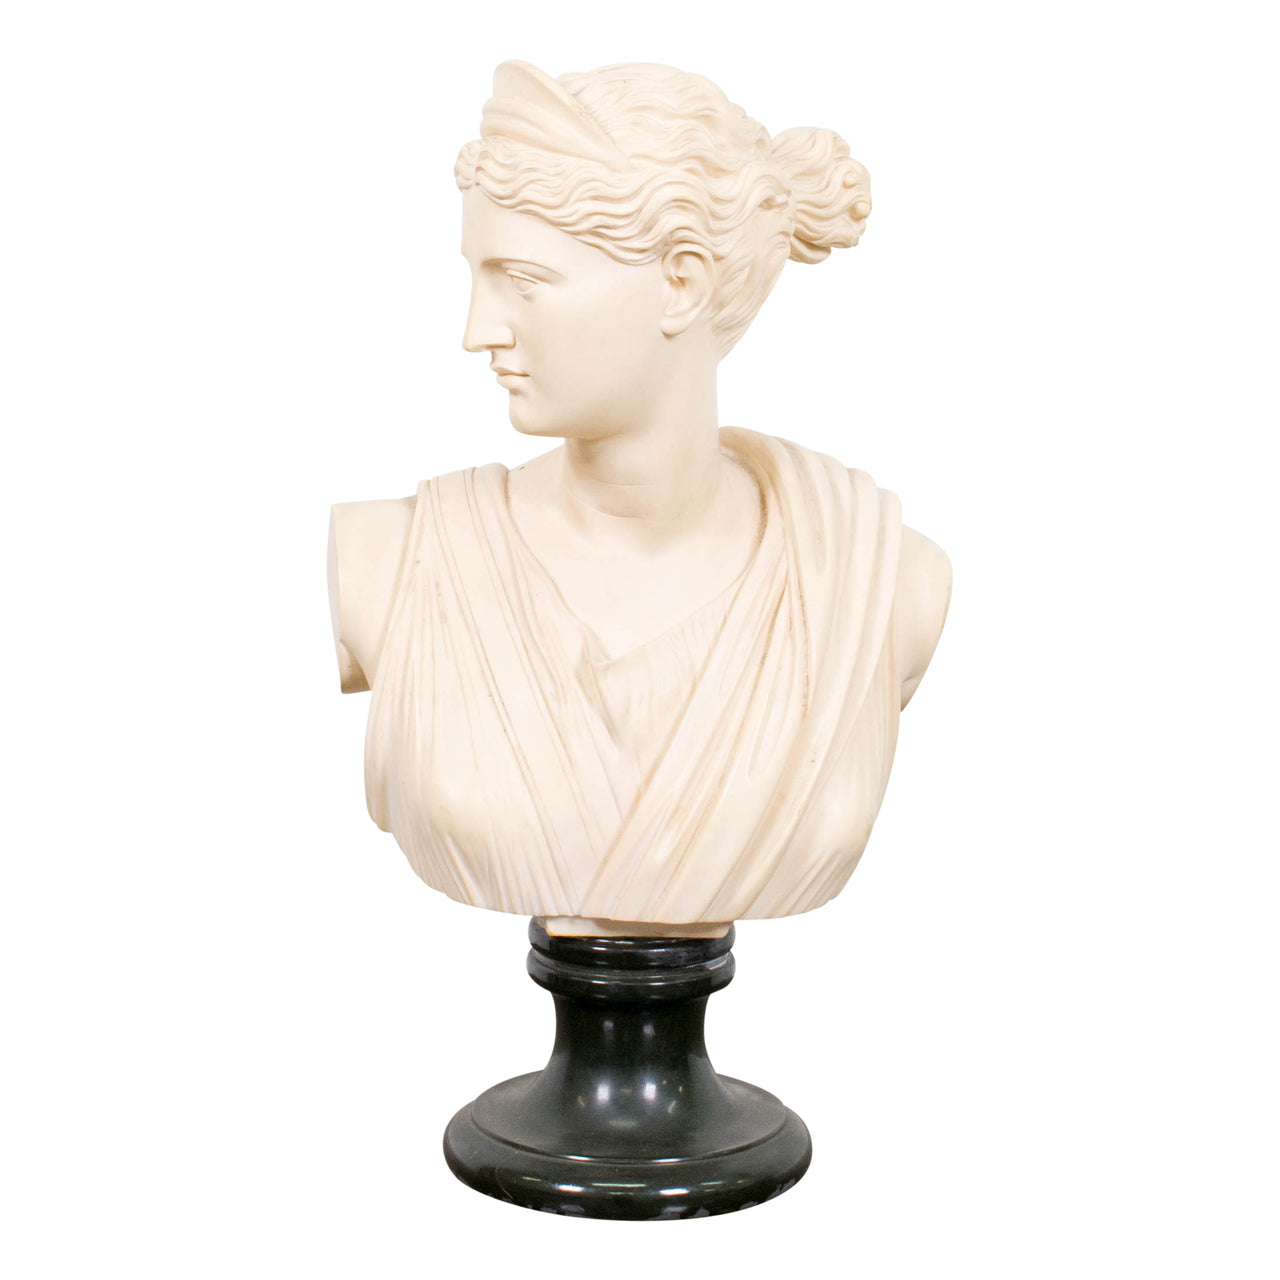 A Cast Bust of Diana the Huntress